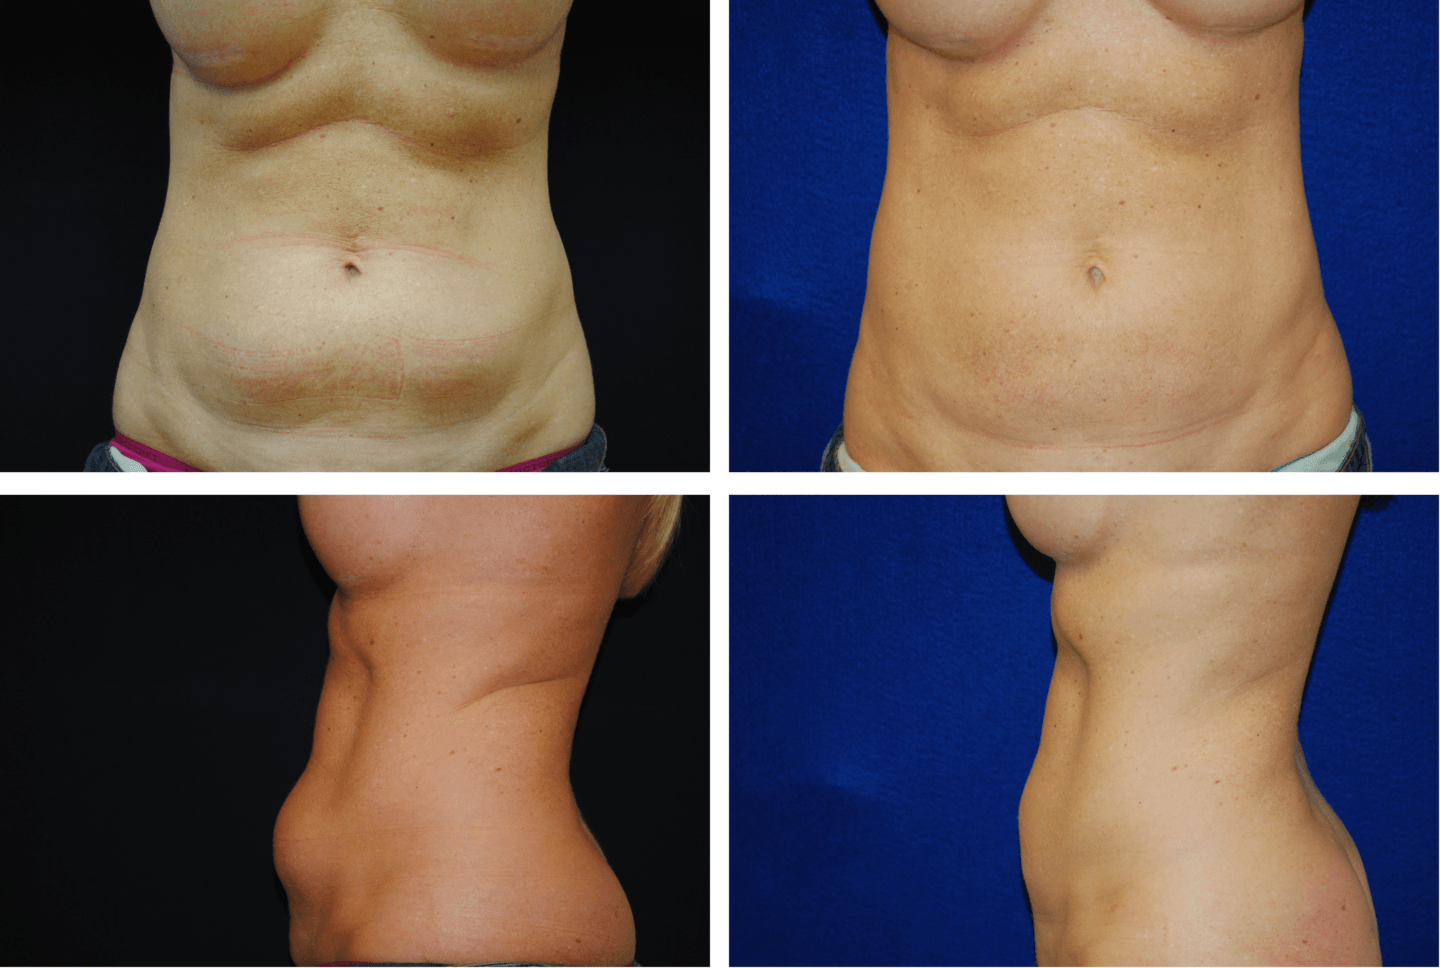 Liposuction Abdomen and Flanks Case 7001